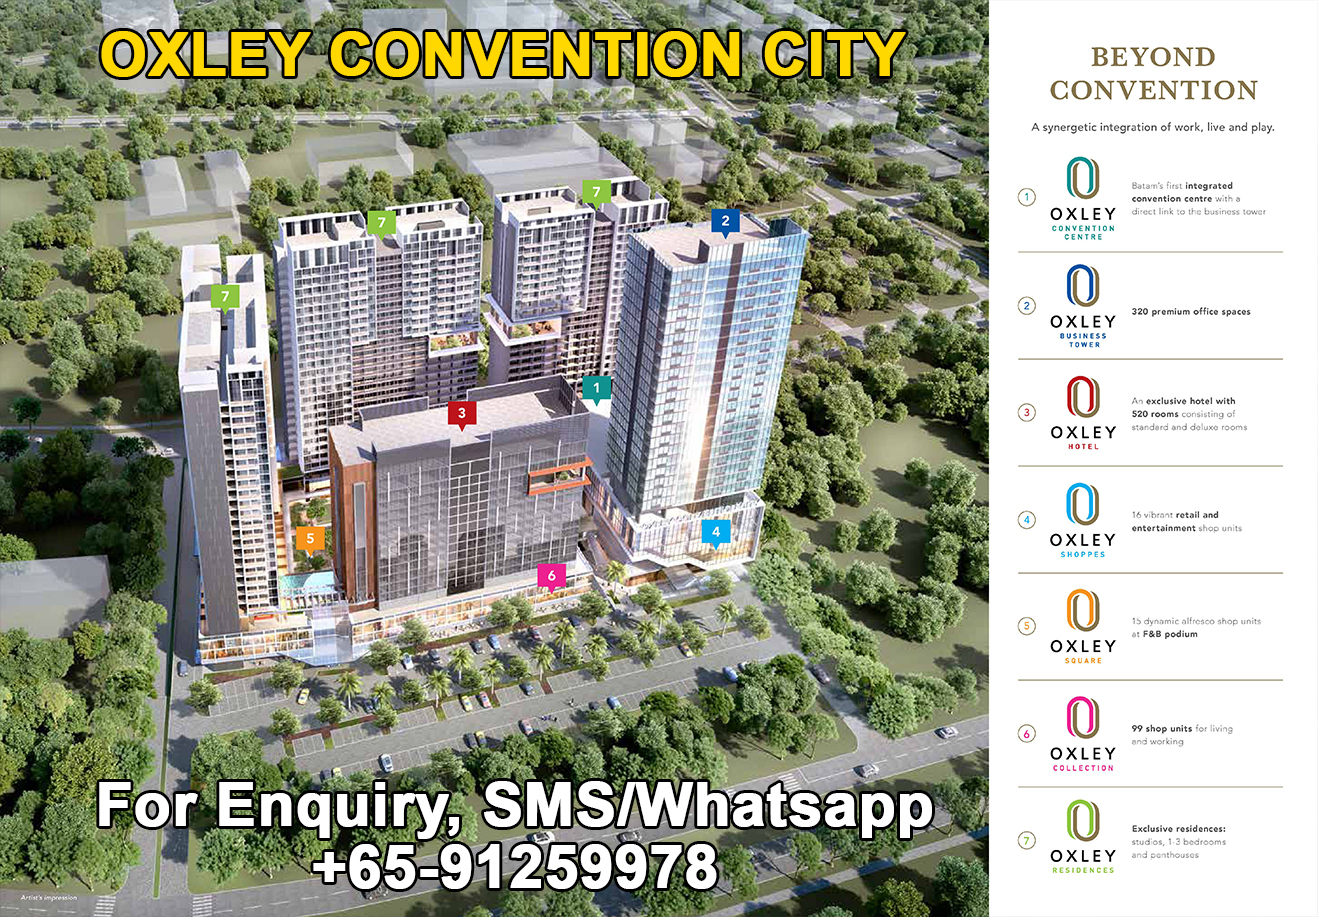 Oxley Convention City Fully Integrated